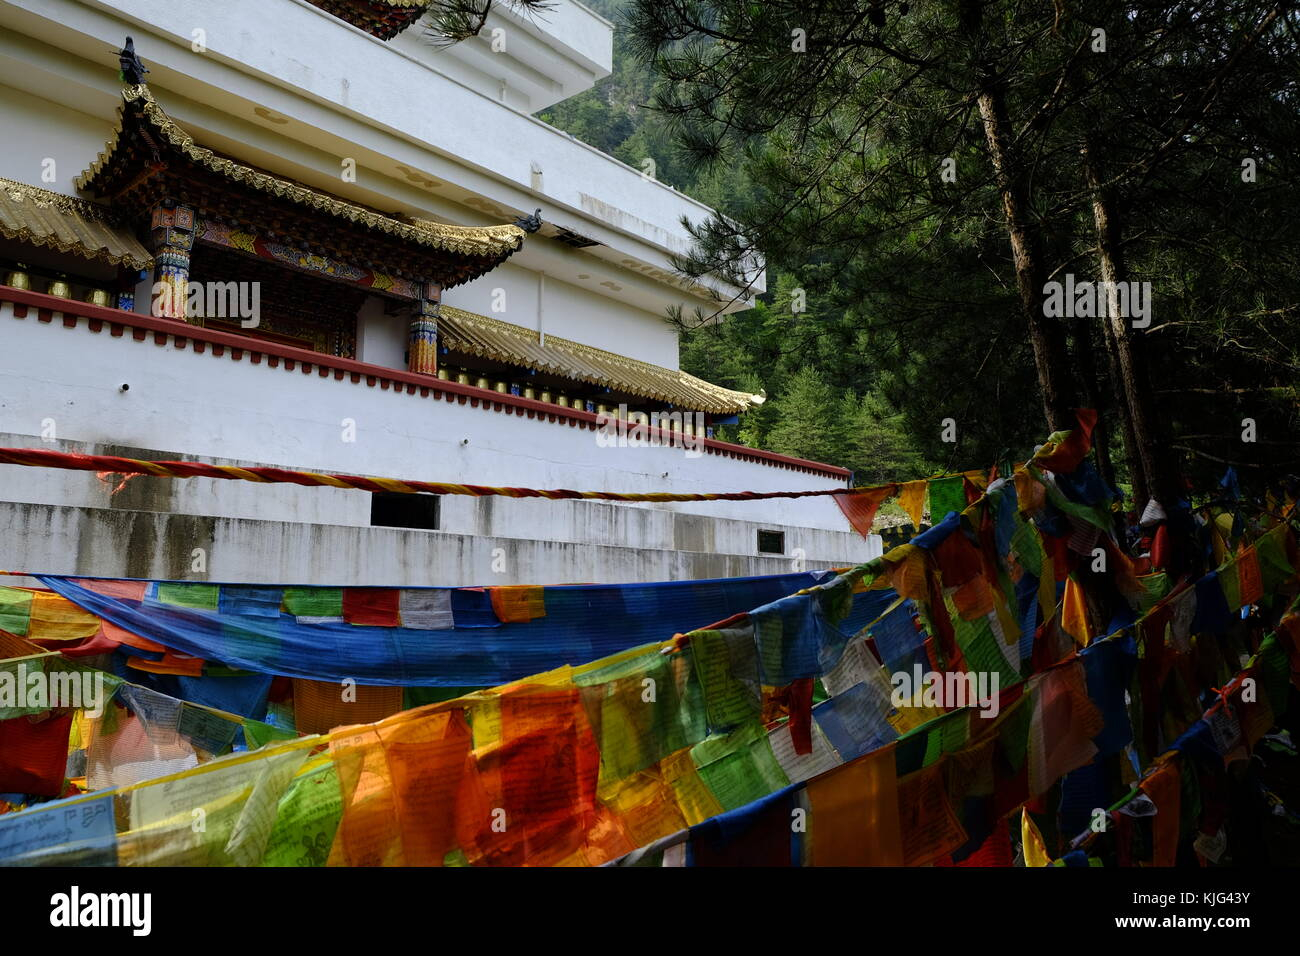 Tibetan monastery at Jiuzhaigou valley in China - Stock Image